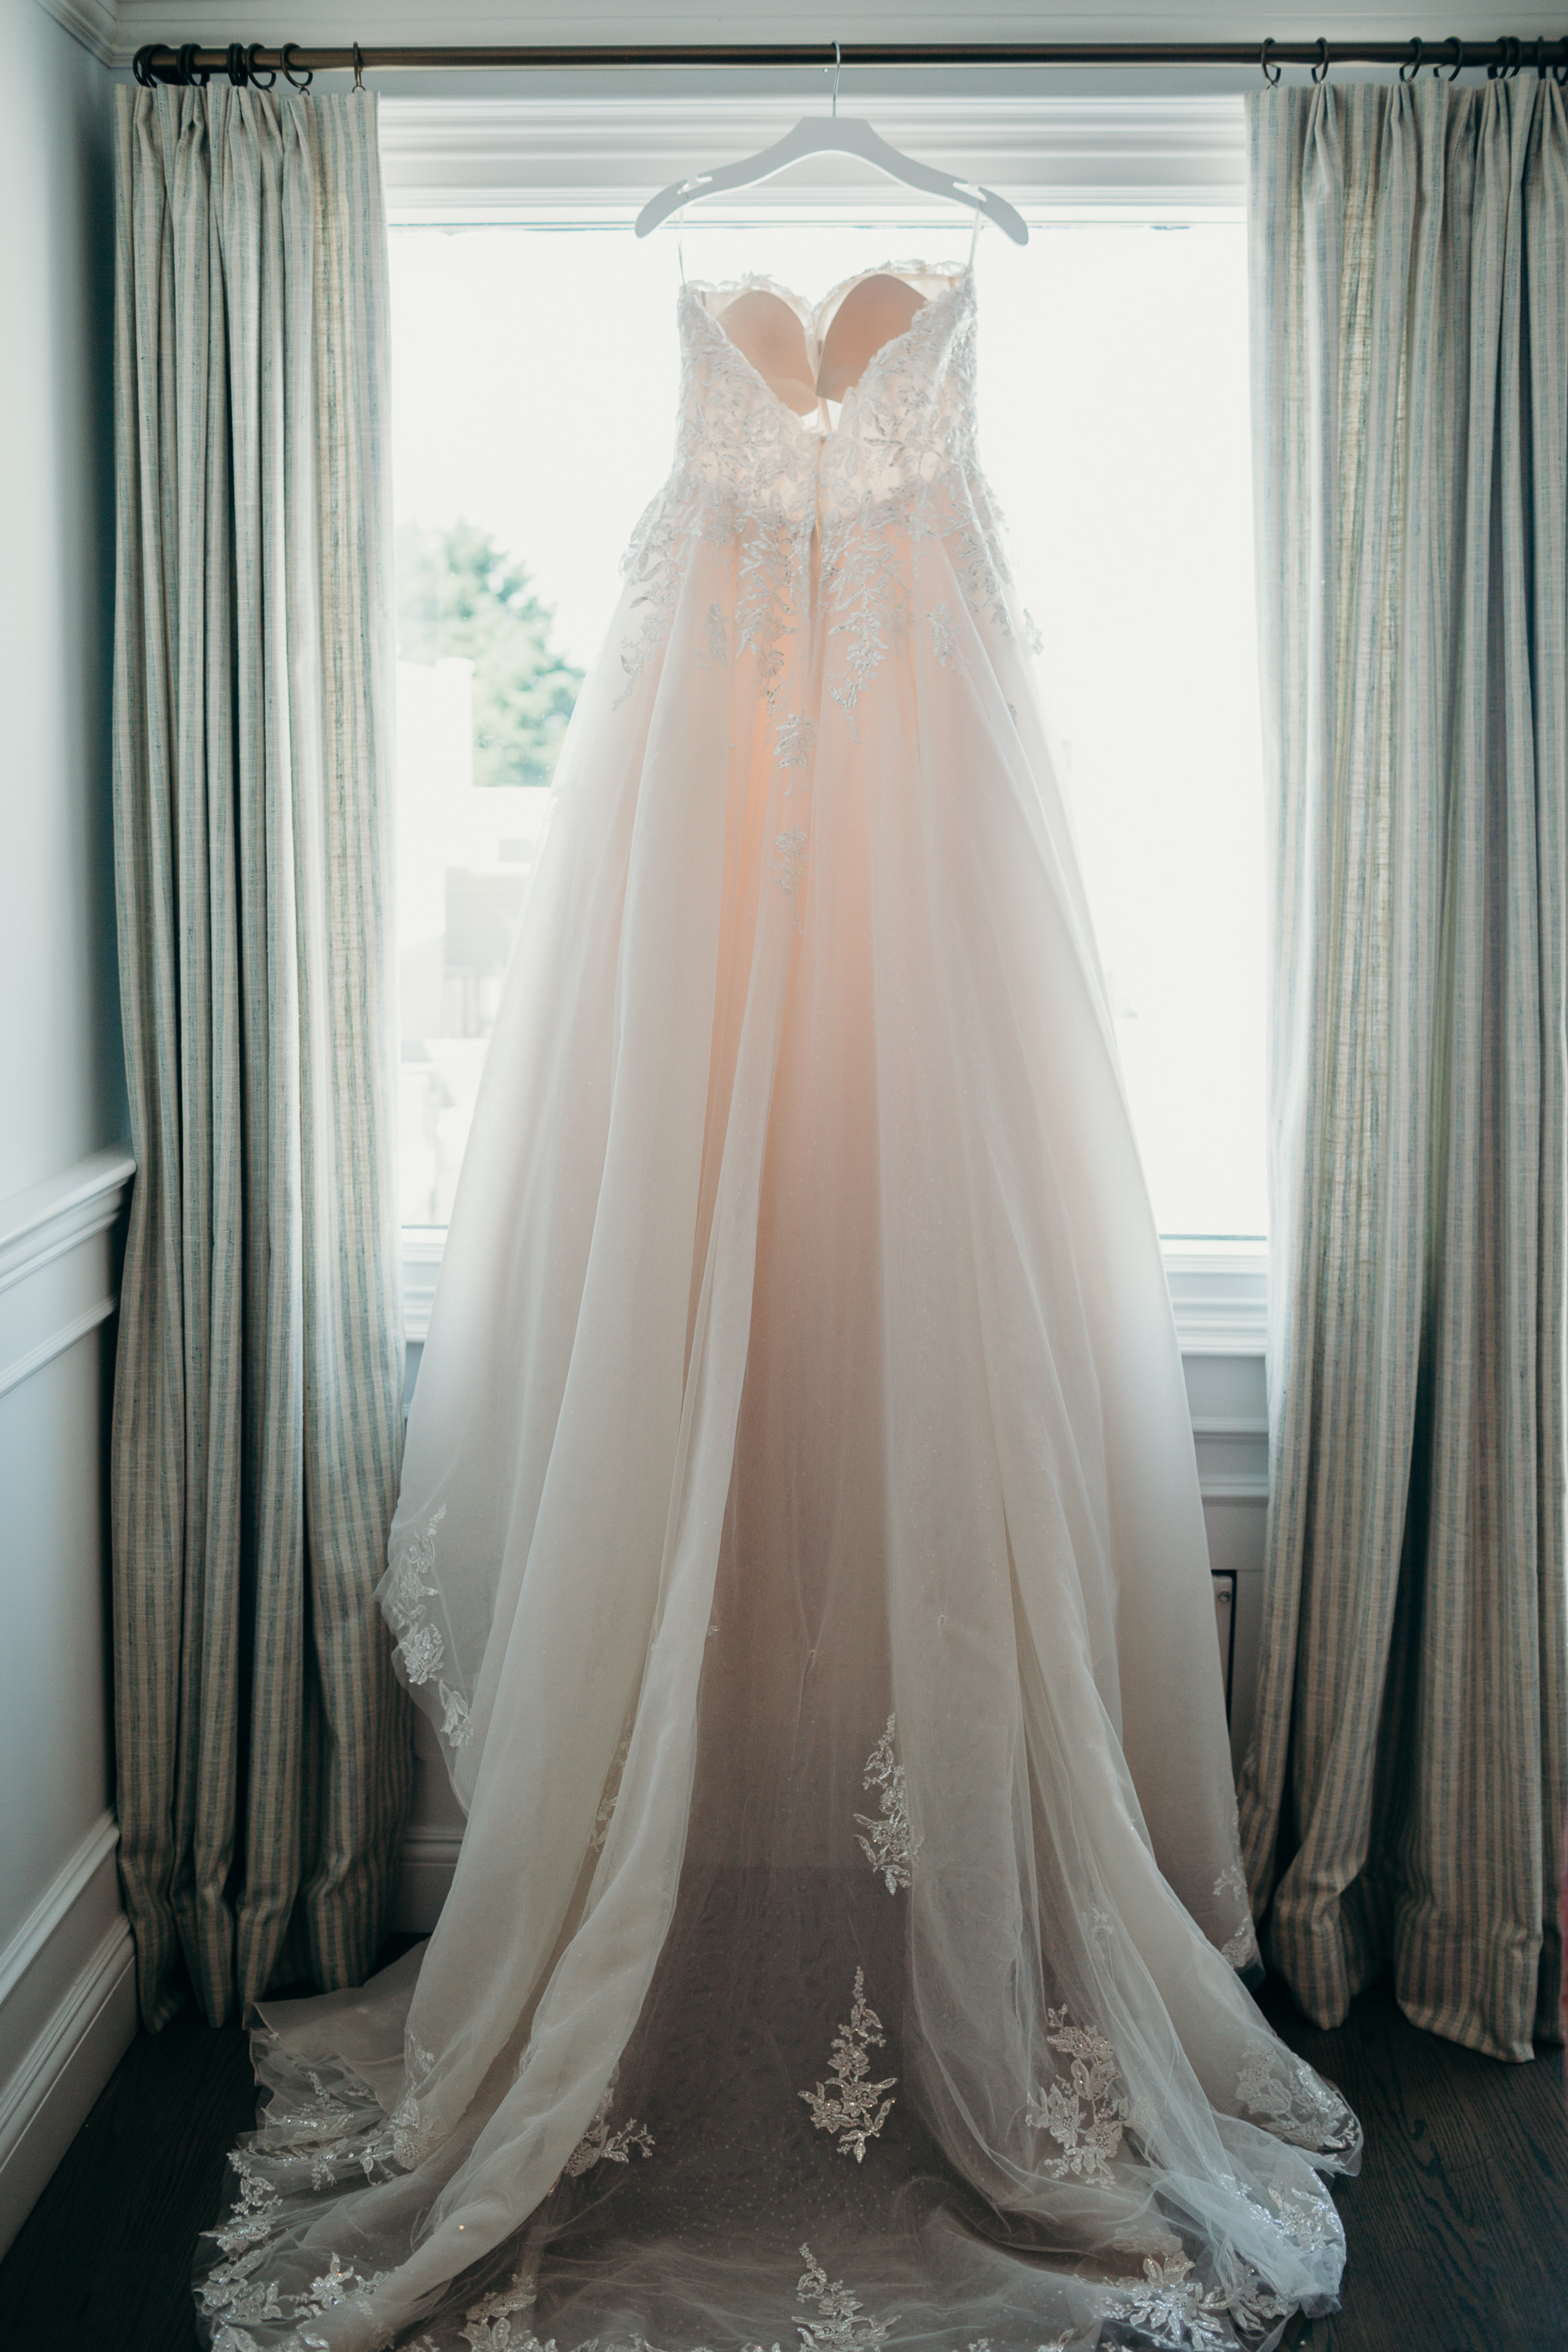 Gianna Keiko Atlanta NYC California Wedding Photographer_Sneak Peek-15.jpg